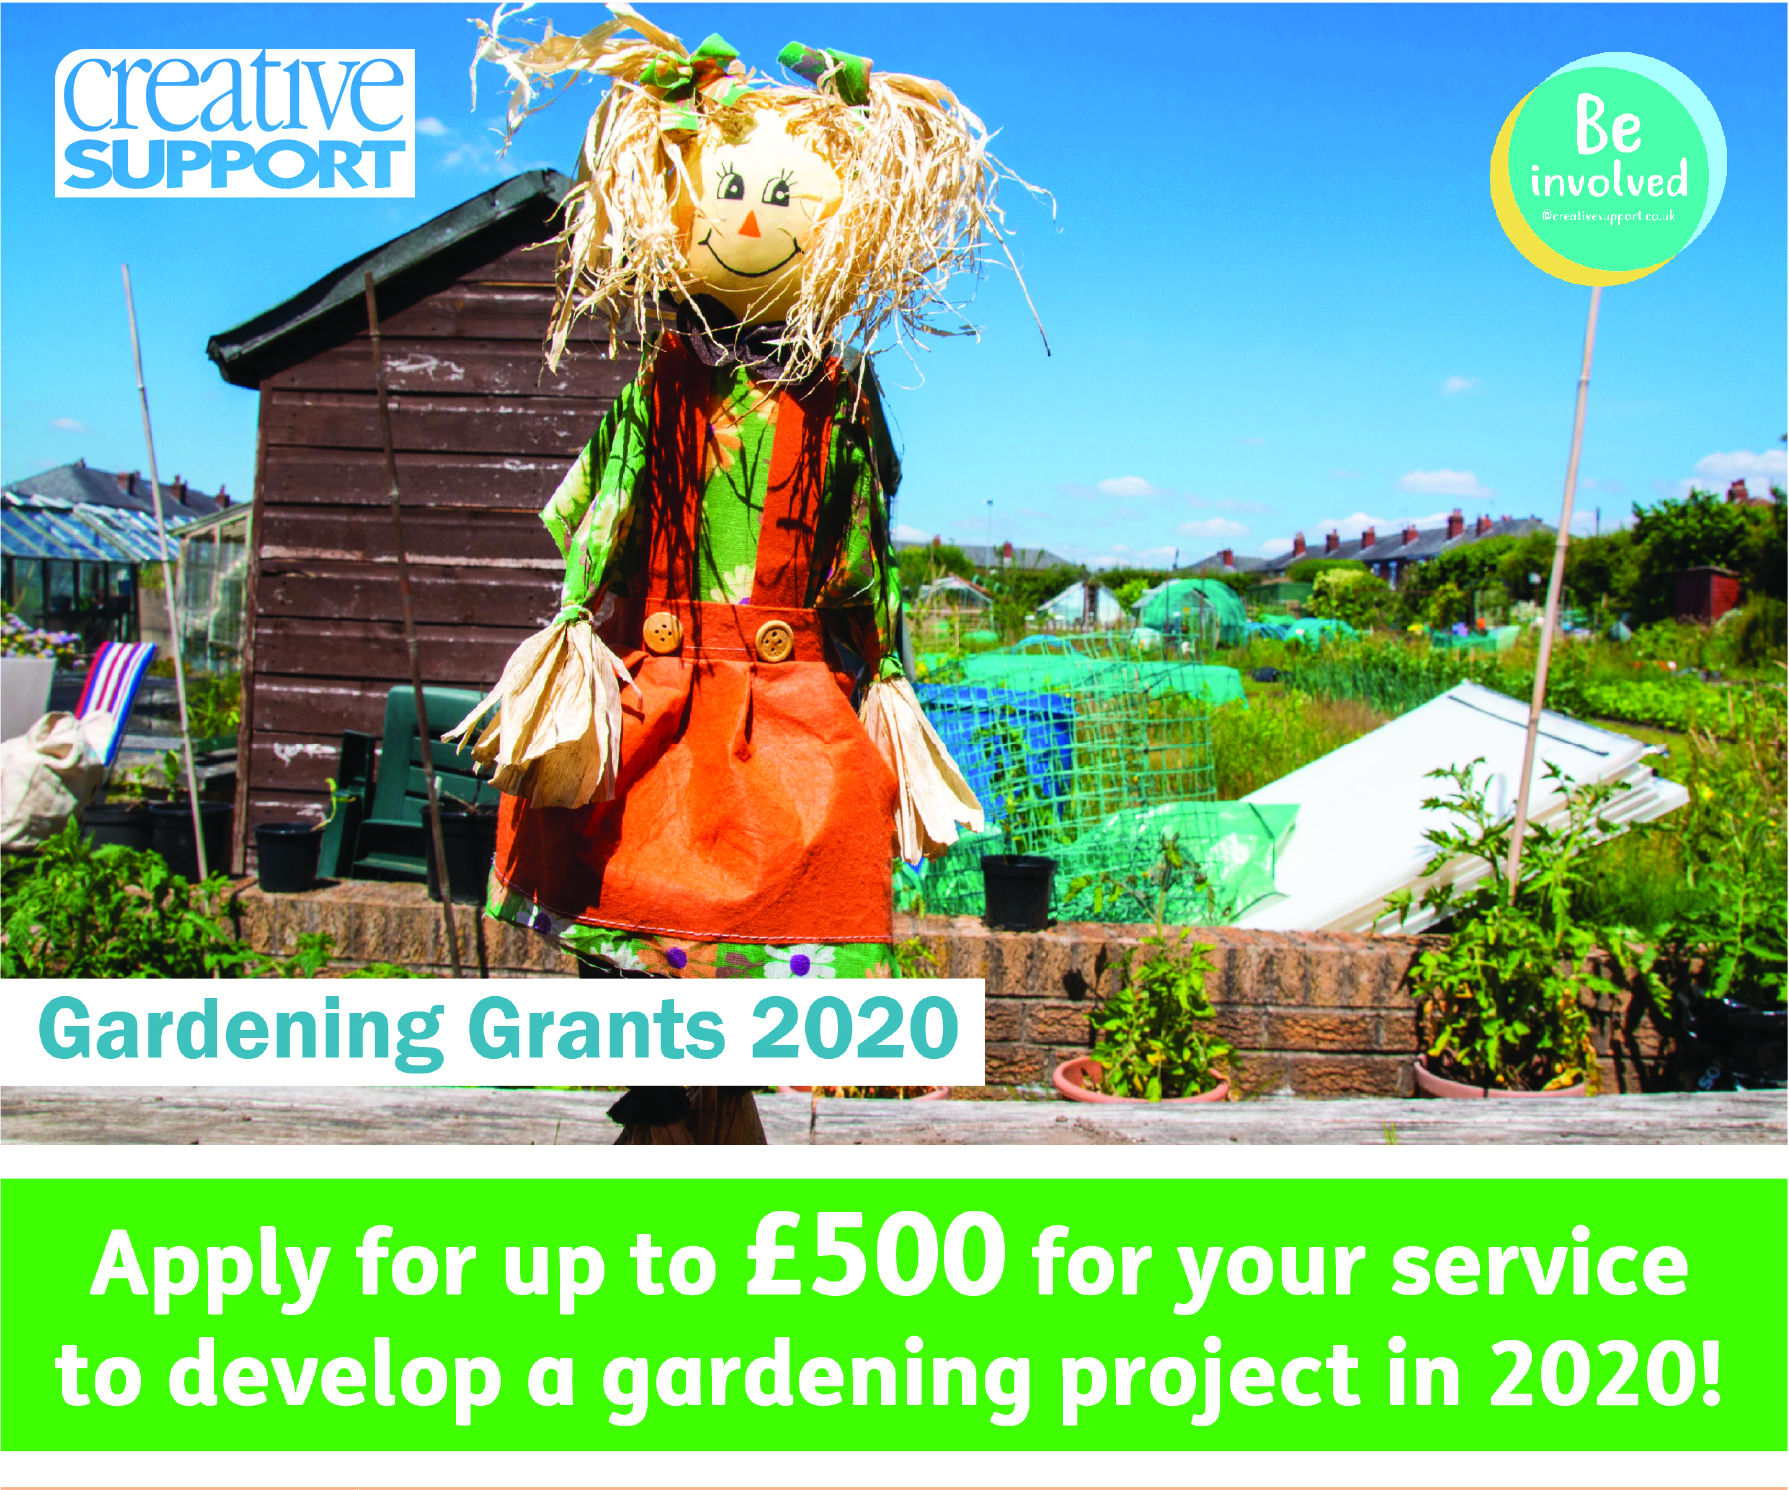 Creative Support joins the green revolution with cash grants for gardening projects